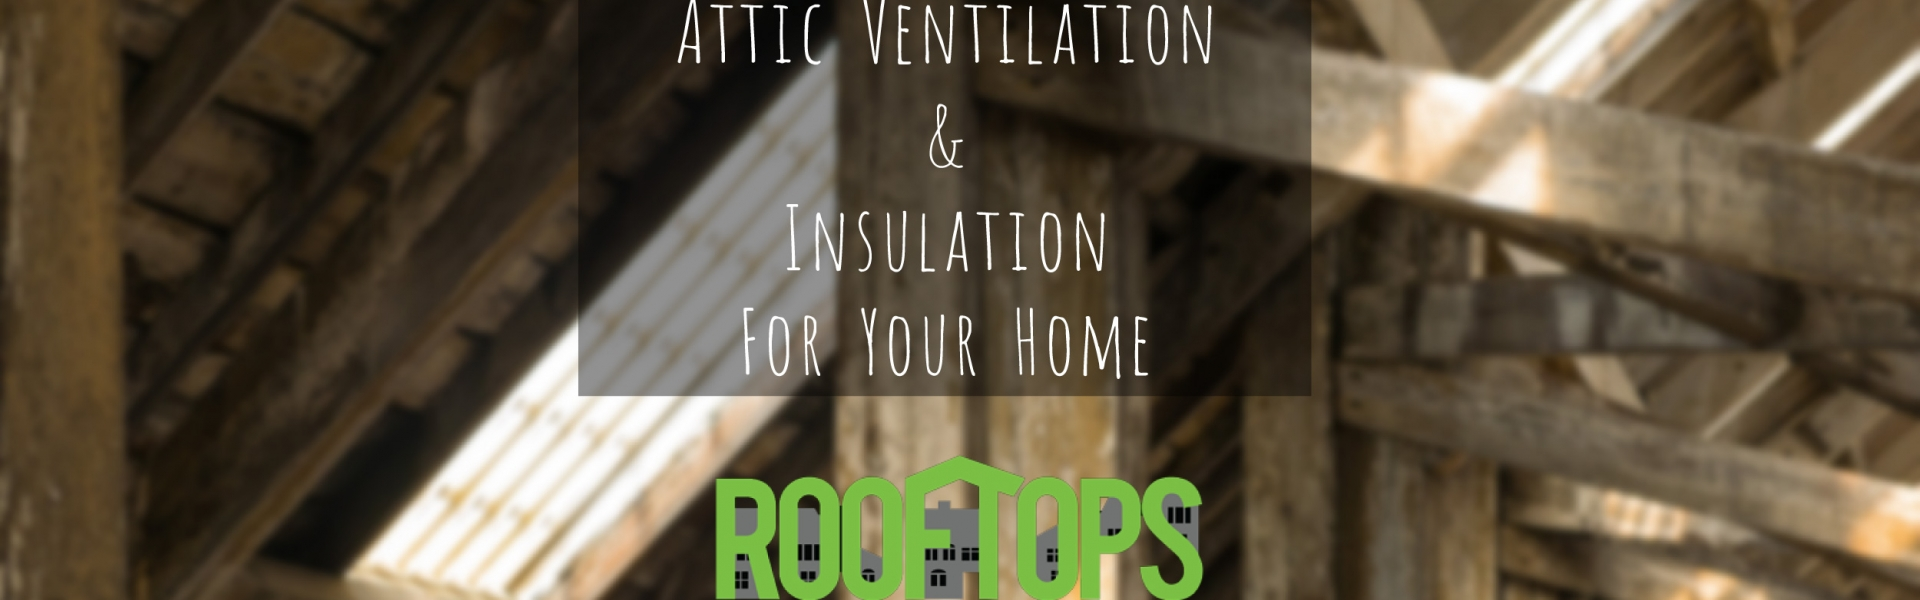 Attic Ventilation & Insulation For Your Home | Insulation Boise